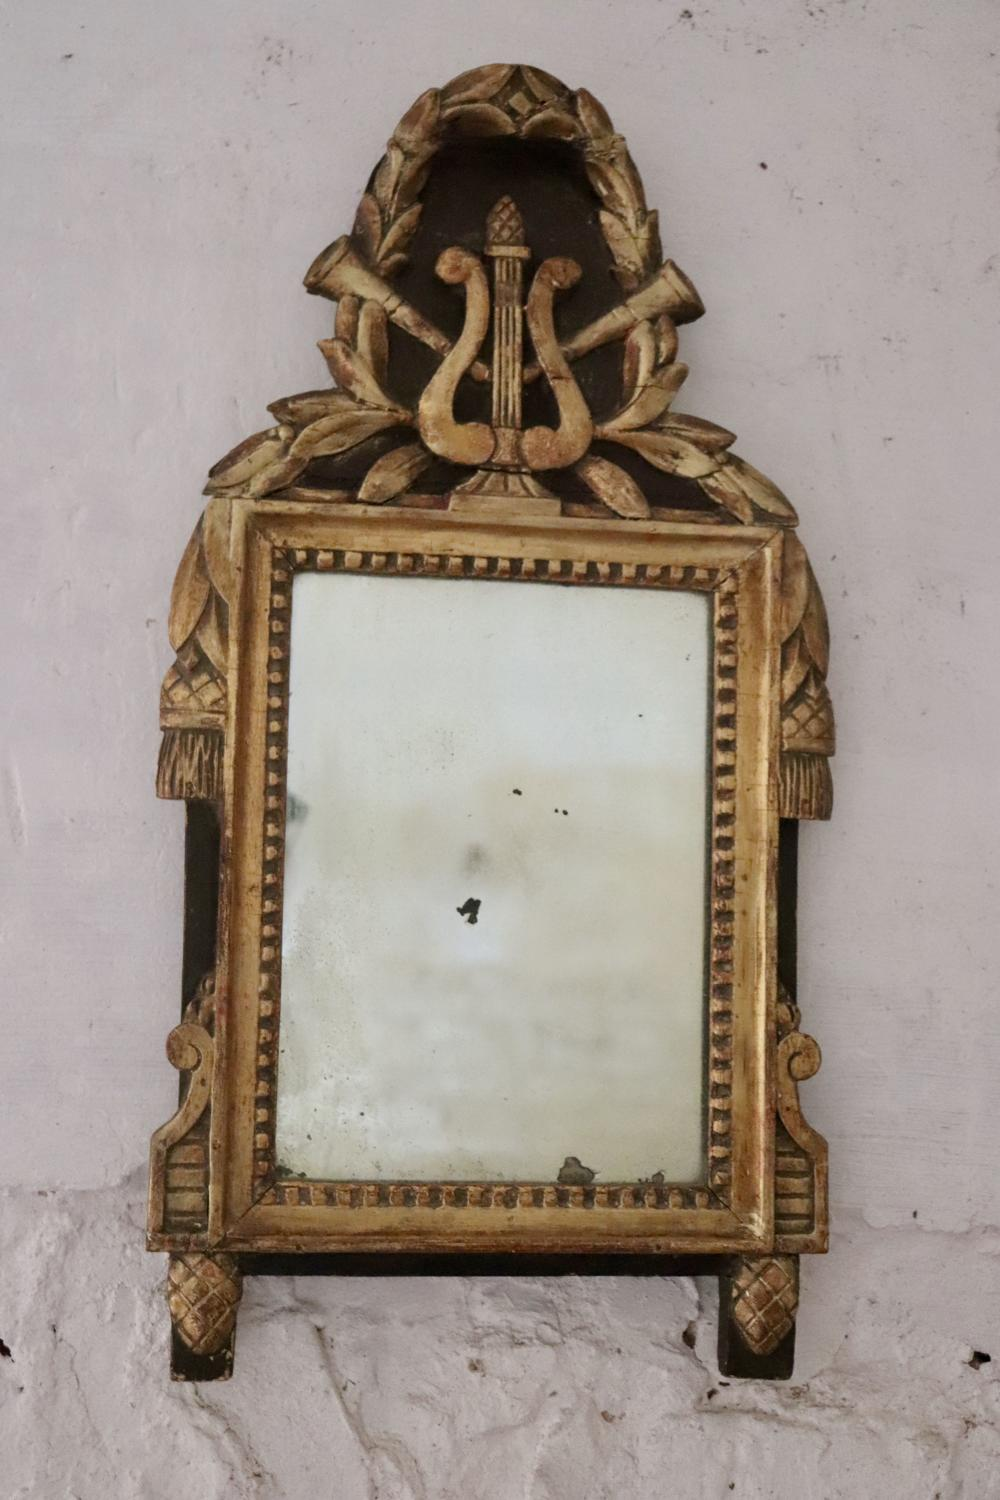 Early 19th century Italian giltwood and painted mirror